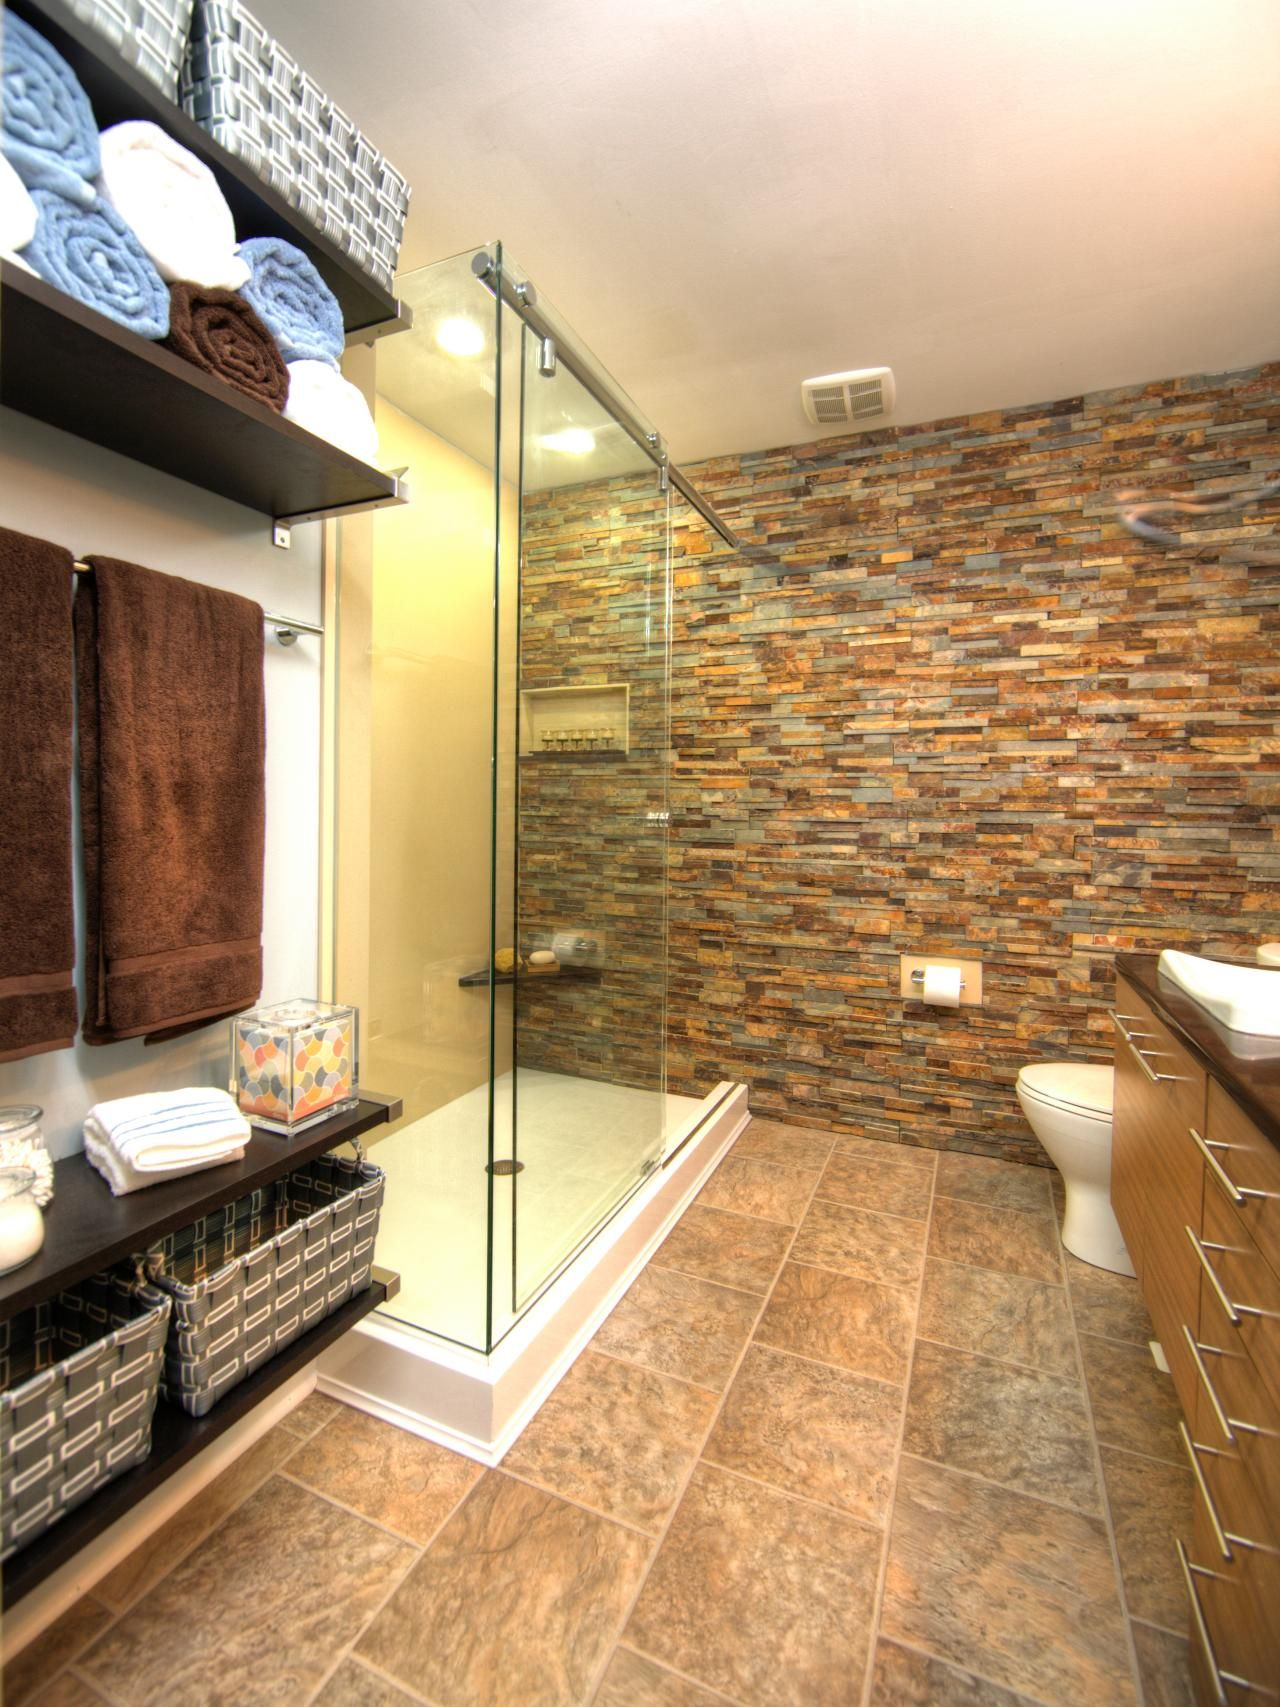 Enchanting Stone Wall Design Ideas Image Collection - The Wall Art ...